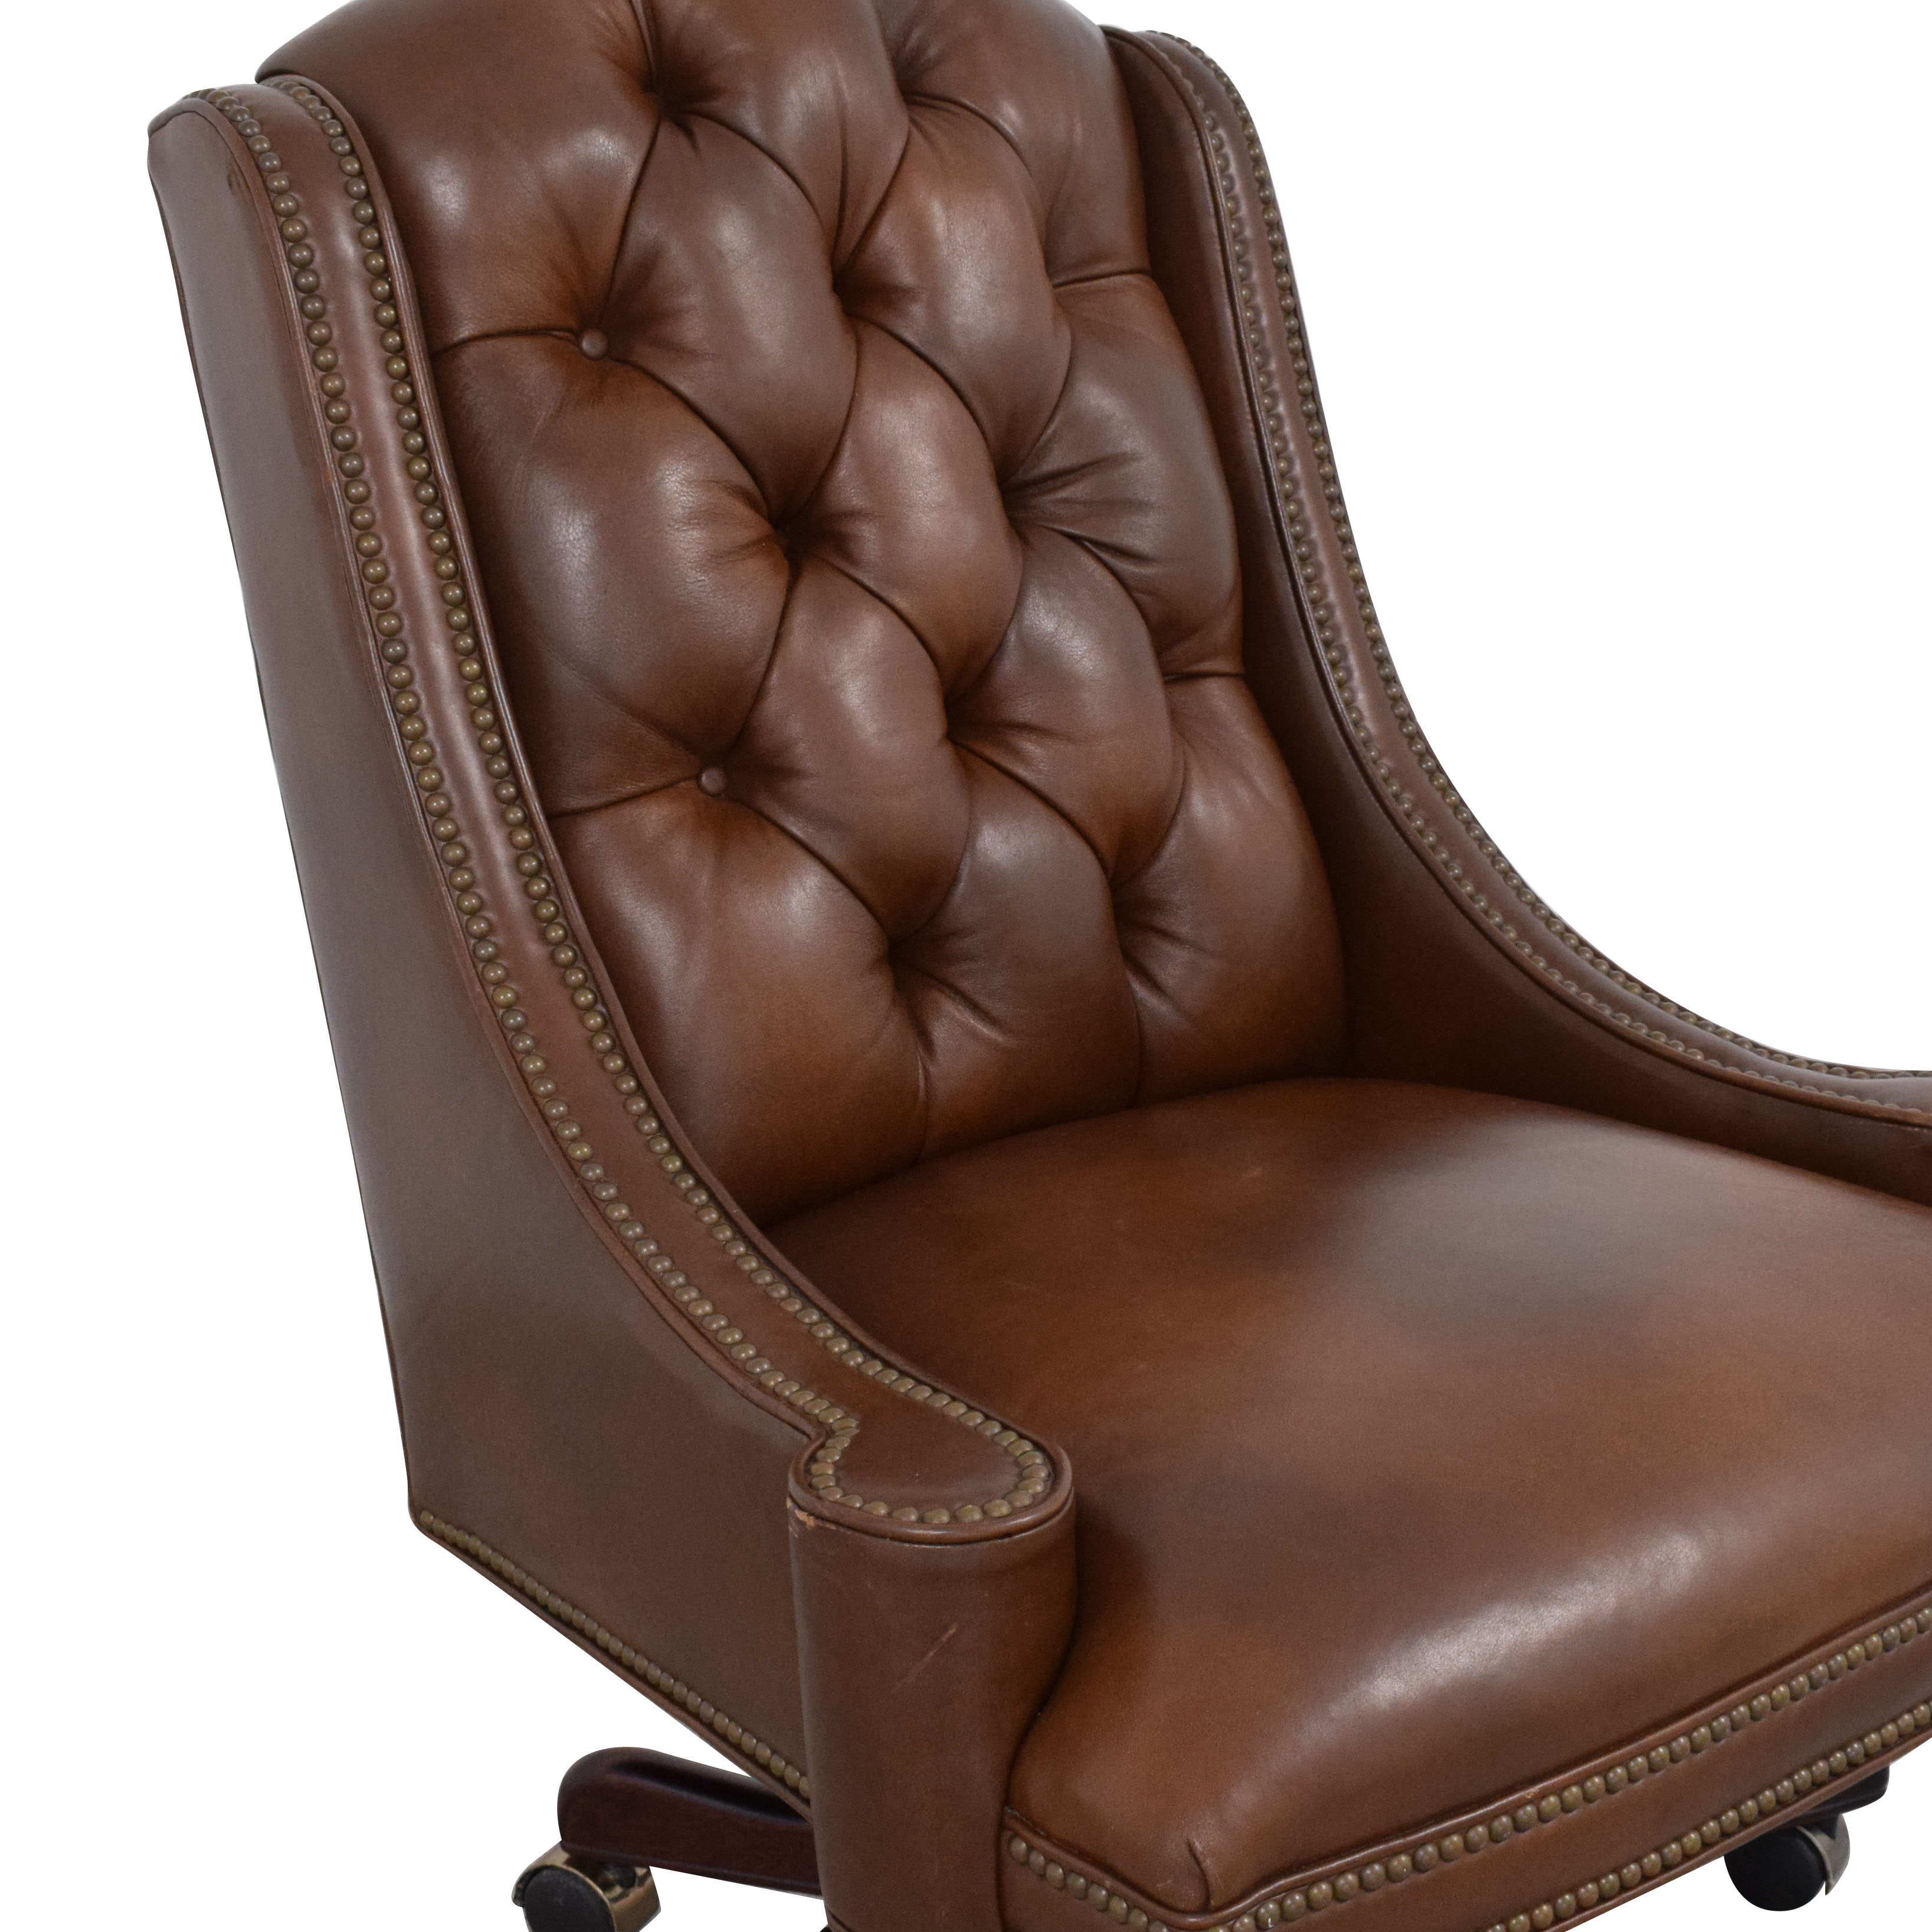 buy Our House Designs Swivel Chair Our House Designs Chairs